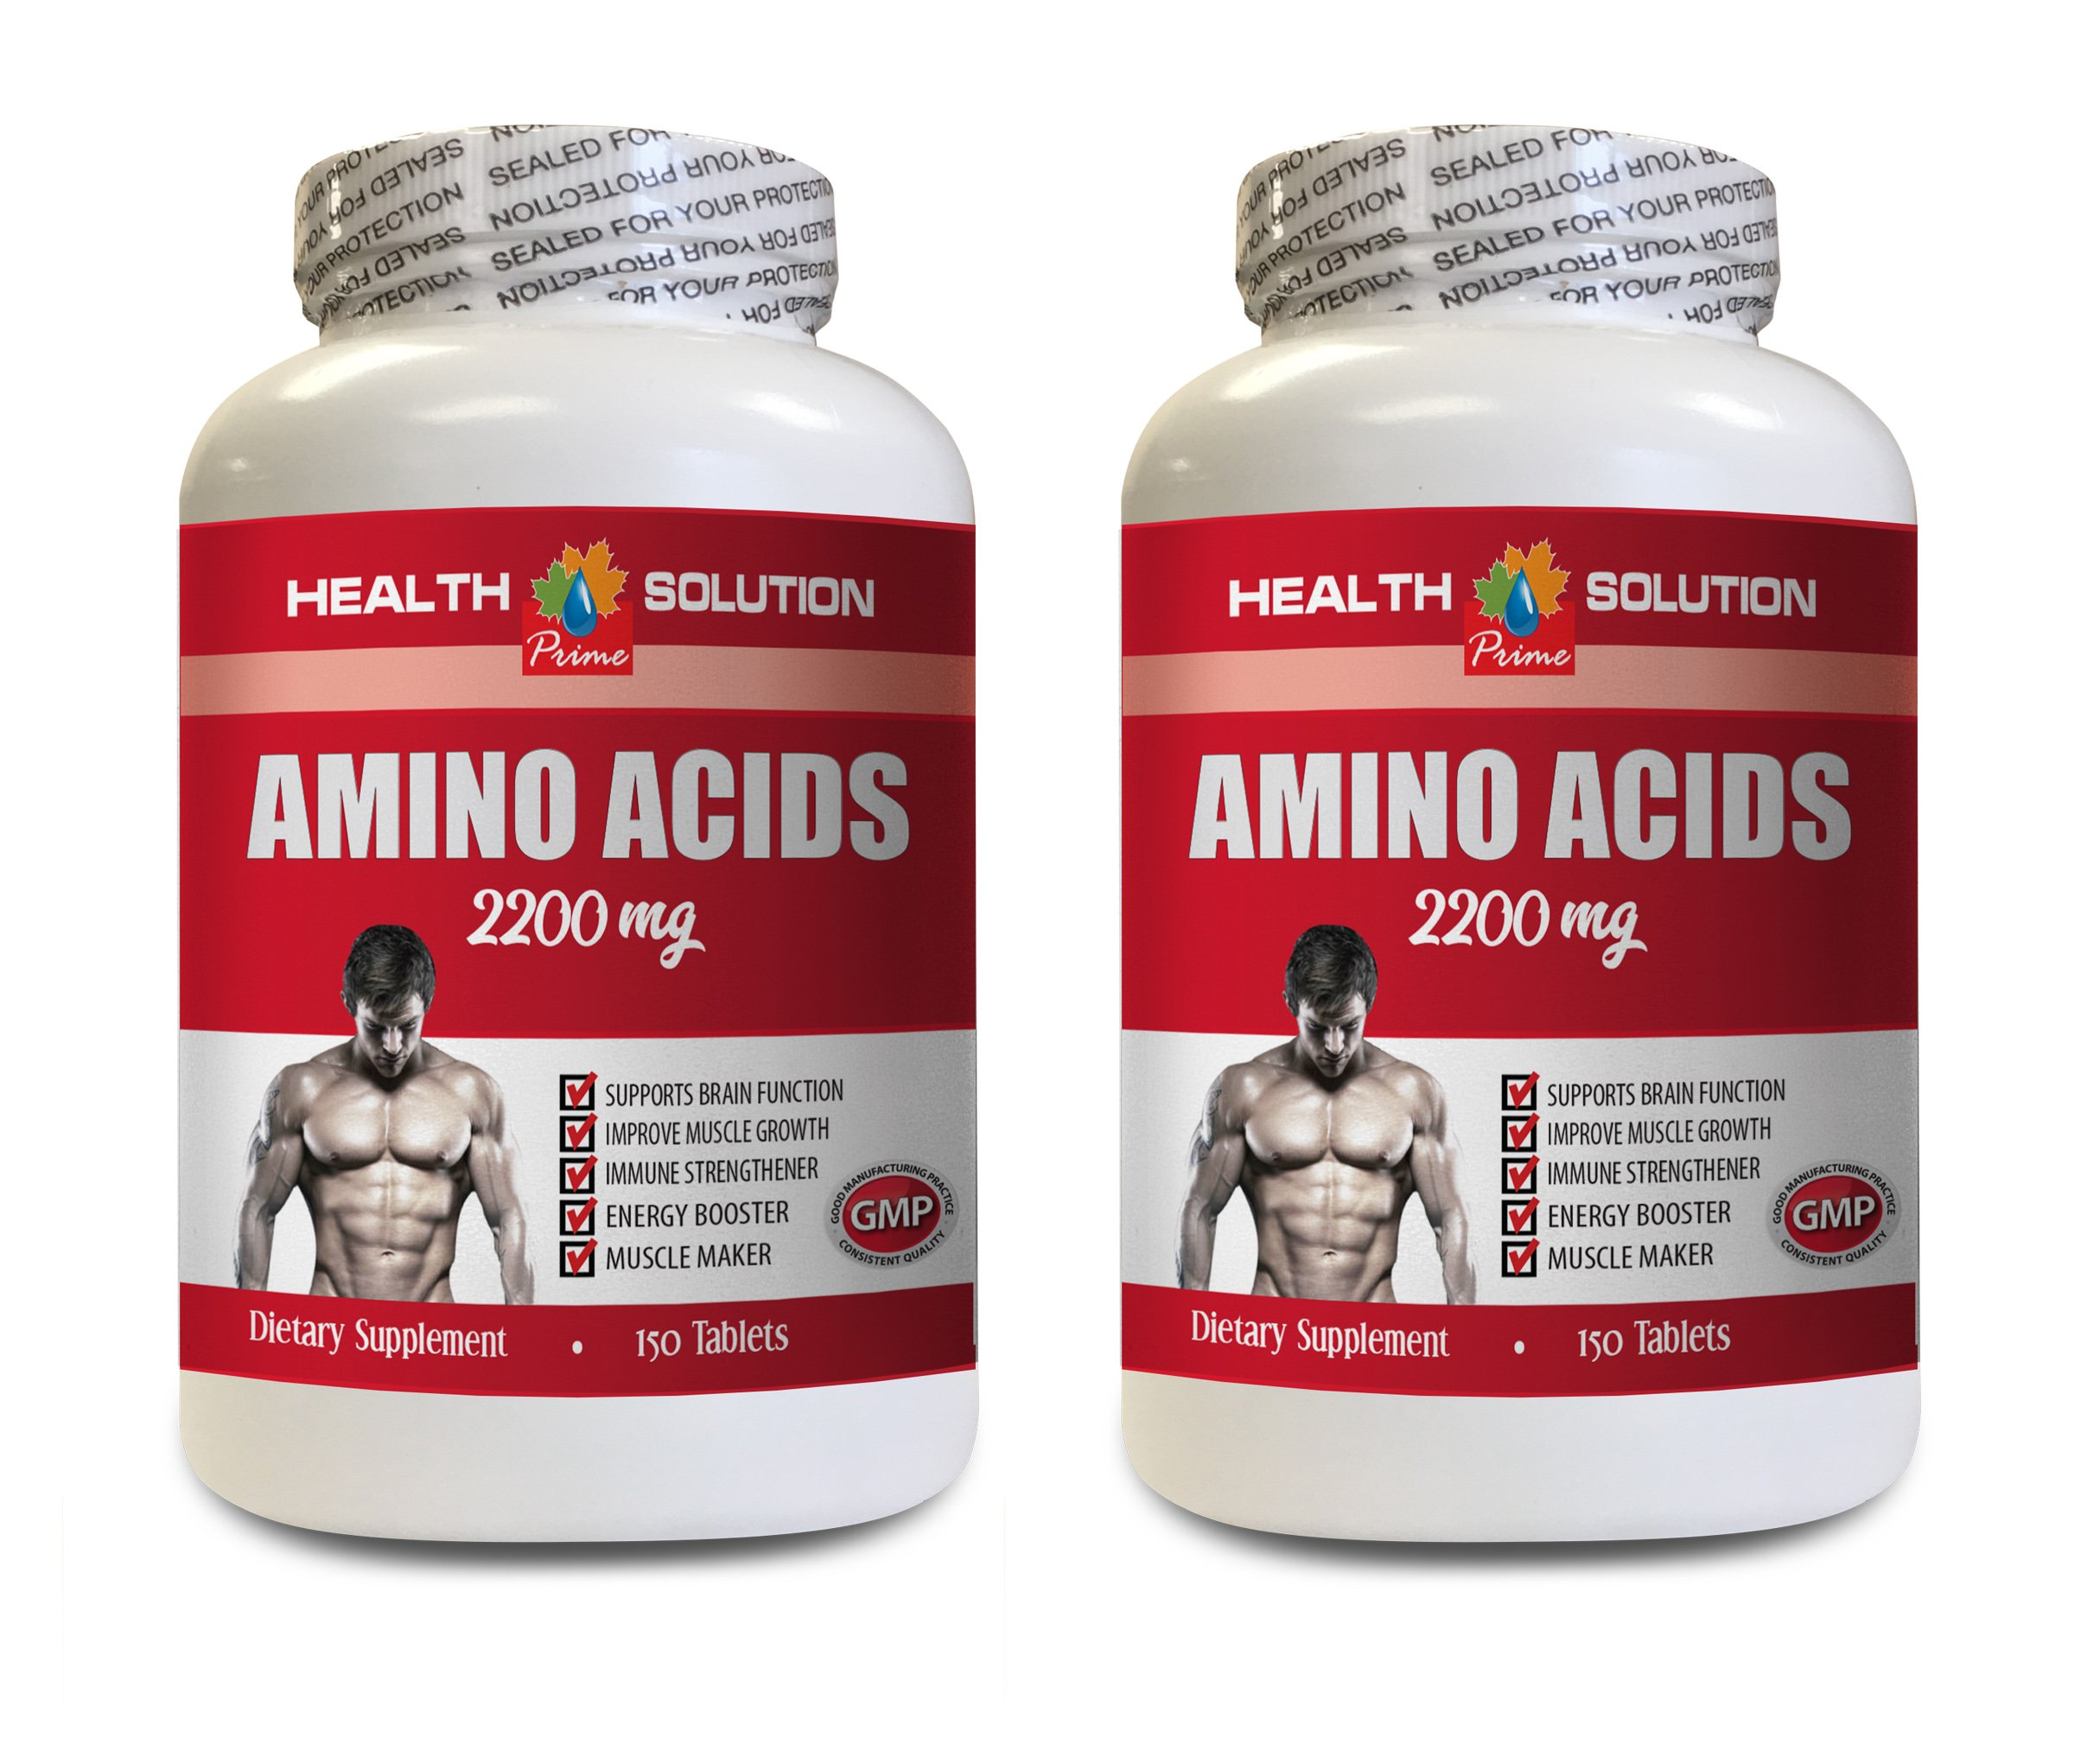 Workout Supplements for Men Muscle - Amino Acids 2200 Mg - Muscle Maker - Amino Acids Bodybuilding - 2 Bottles 300 Tablets